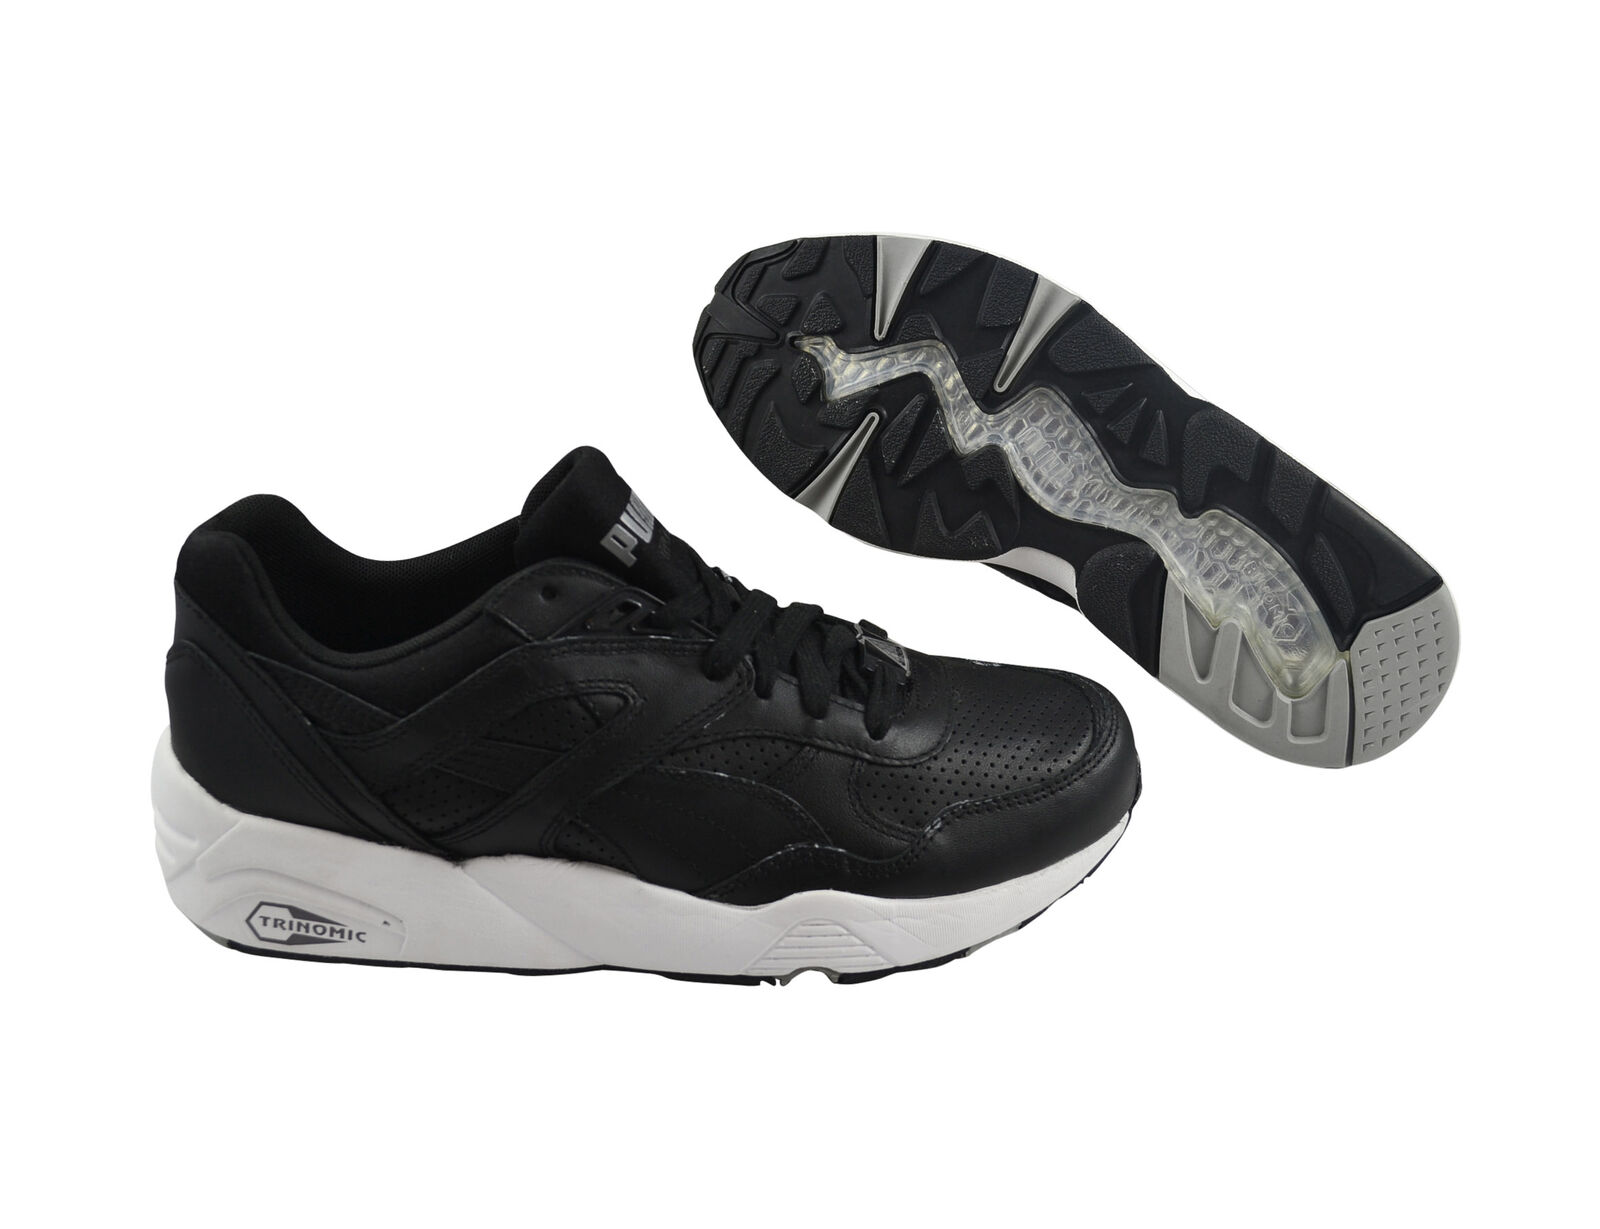 Puma R698 Core Leather black/black/drizzle Schuhe/Sneaker 360601 02